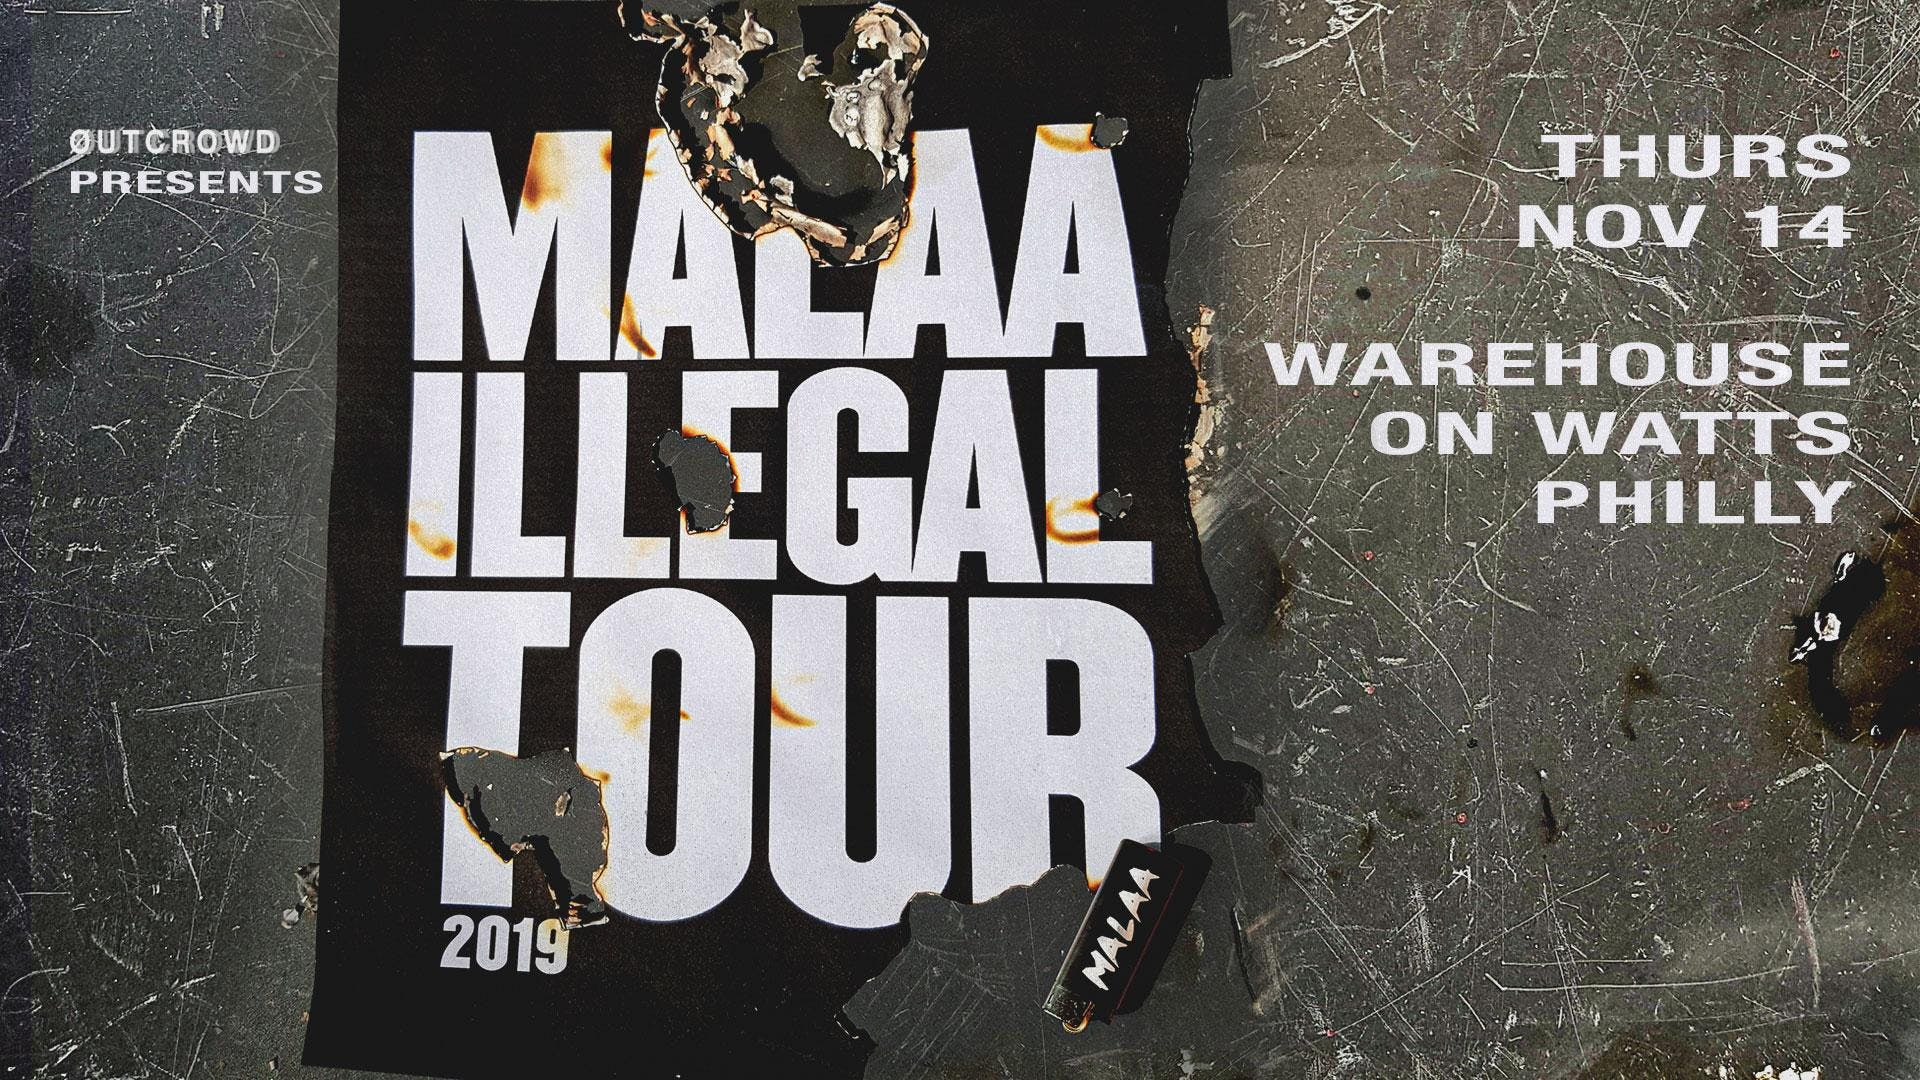 Outcrowd Pres Malaa Illegal Tour 2019 At Warehouse On Watts Images, Photos, Reviews